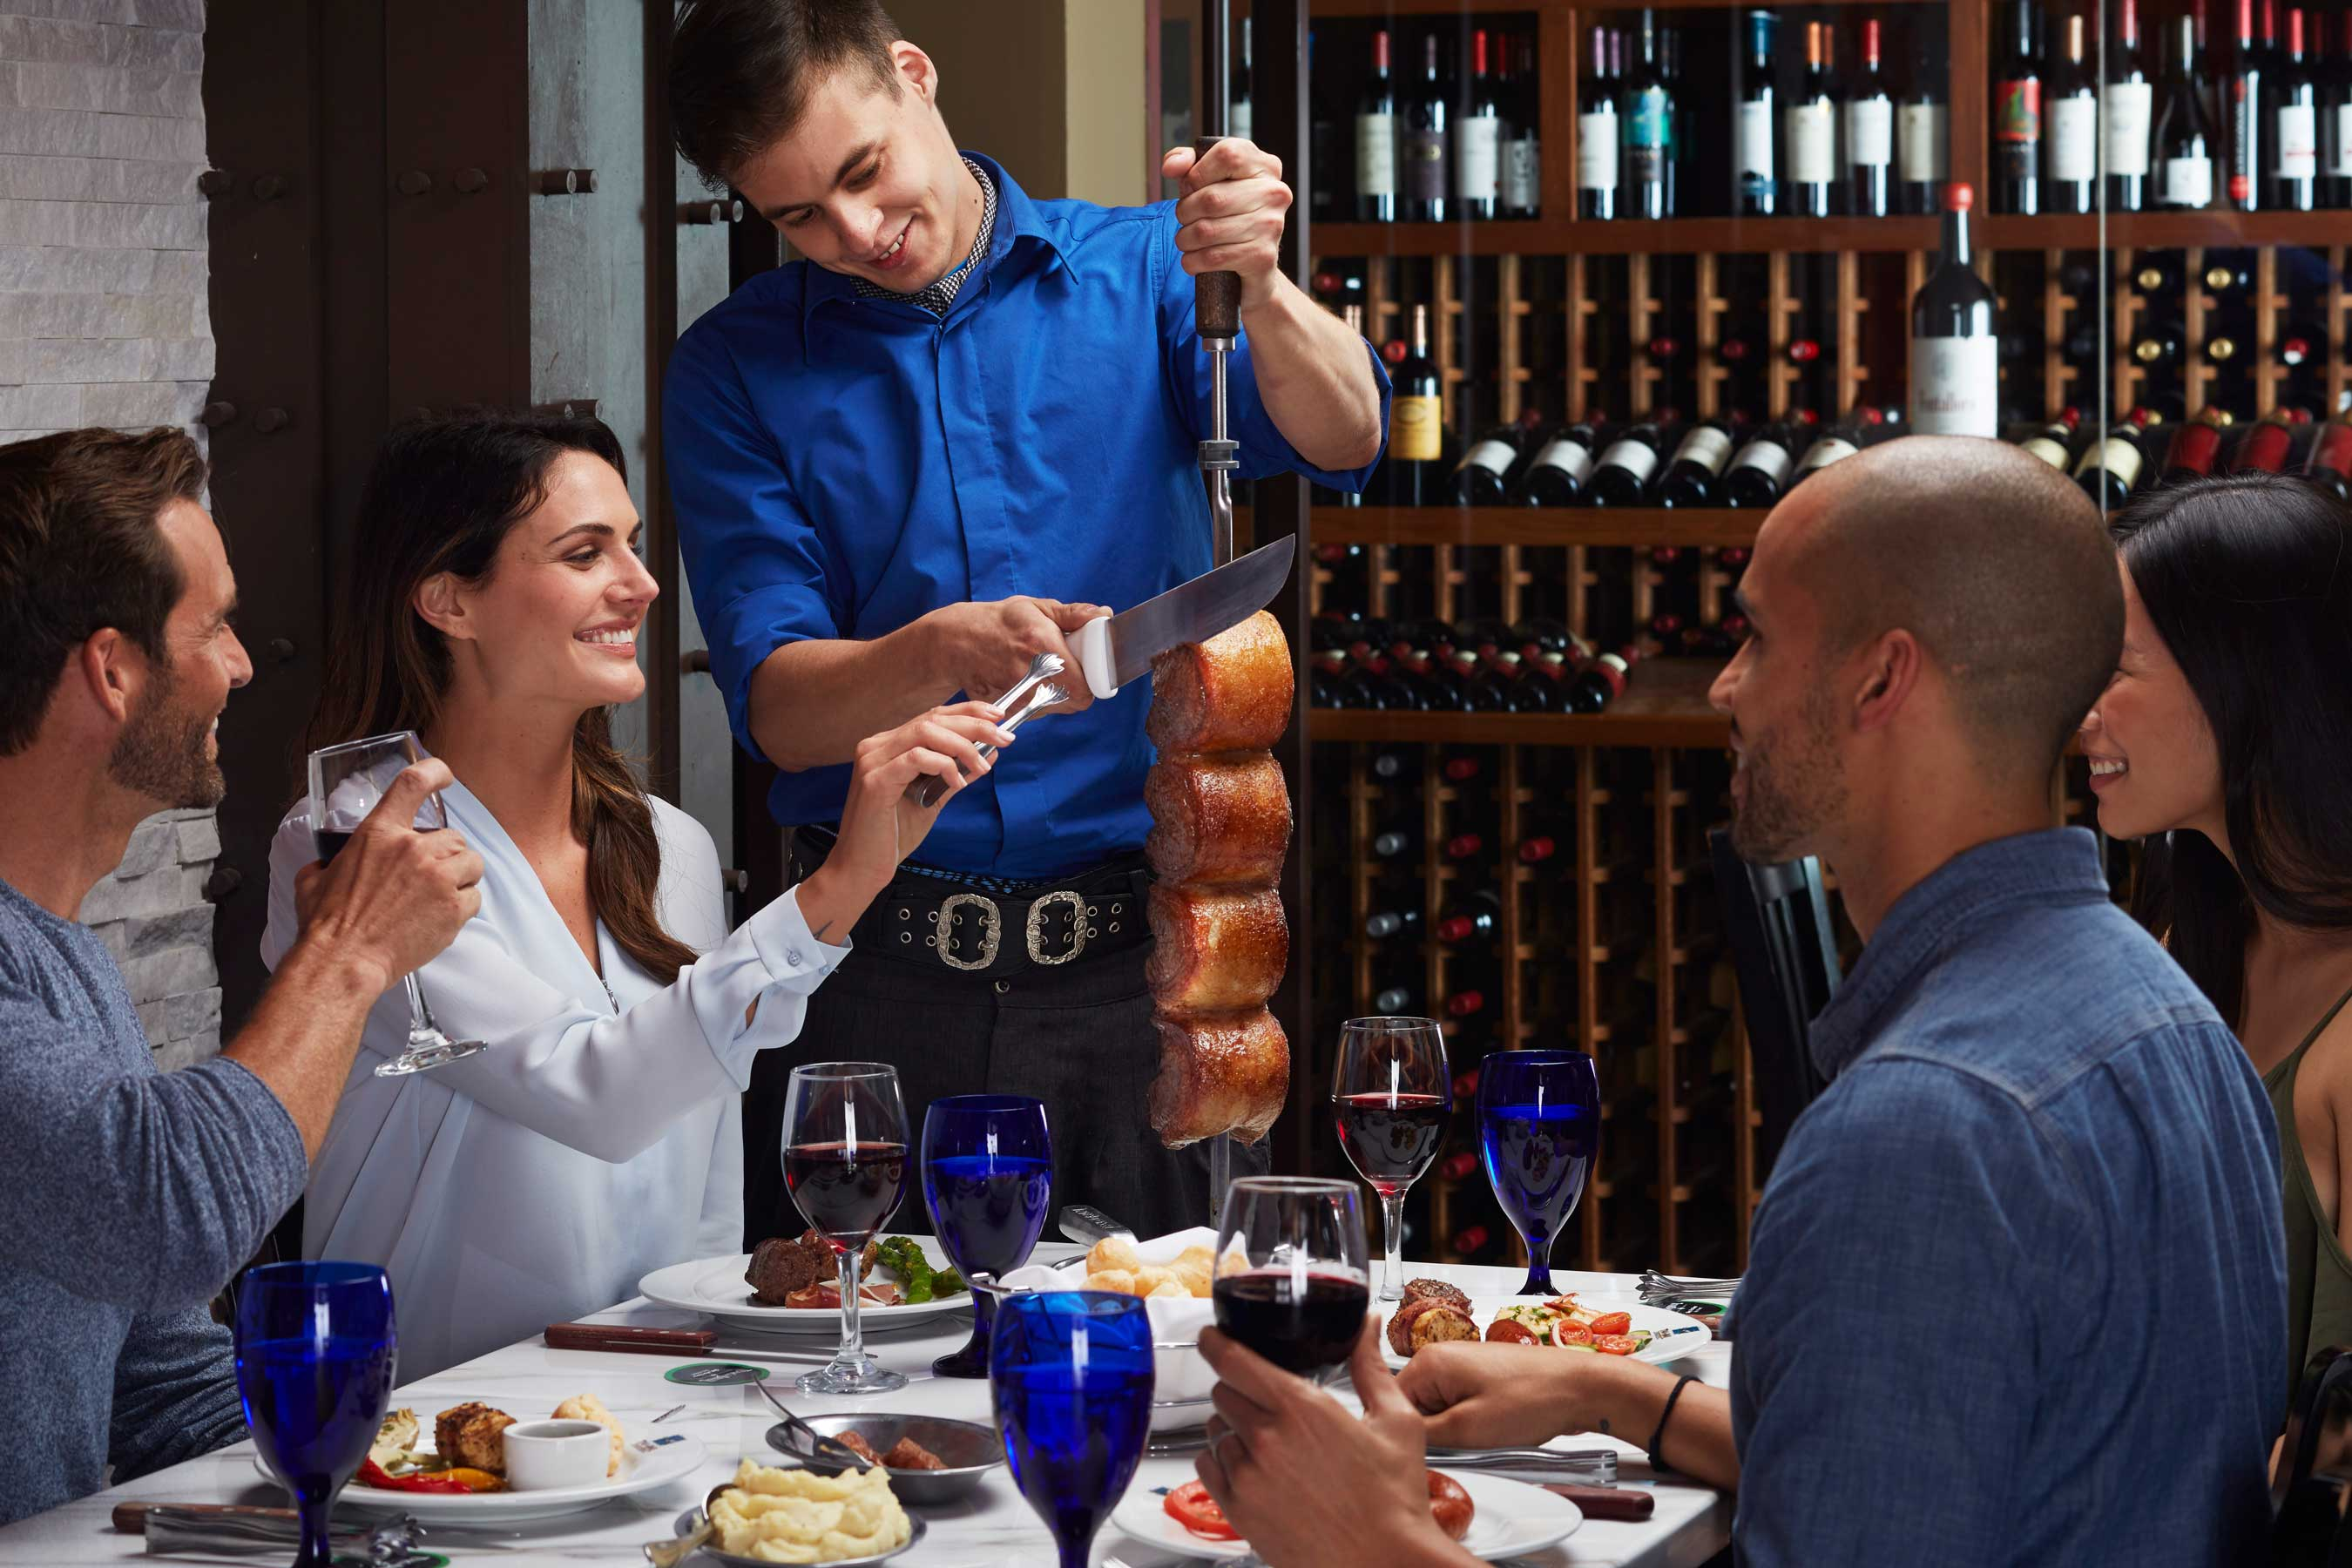 Texas de Brazil's lively ambiance and mouthwatering rodizio-style dining experience sets the scene for friends, family and business associates. Anniversary pricing from 1998 is offered only on October 8th and 9th.